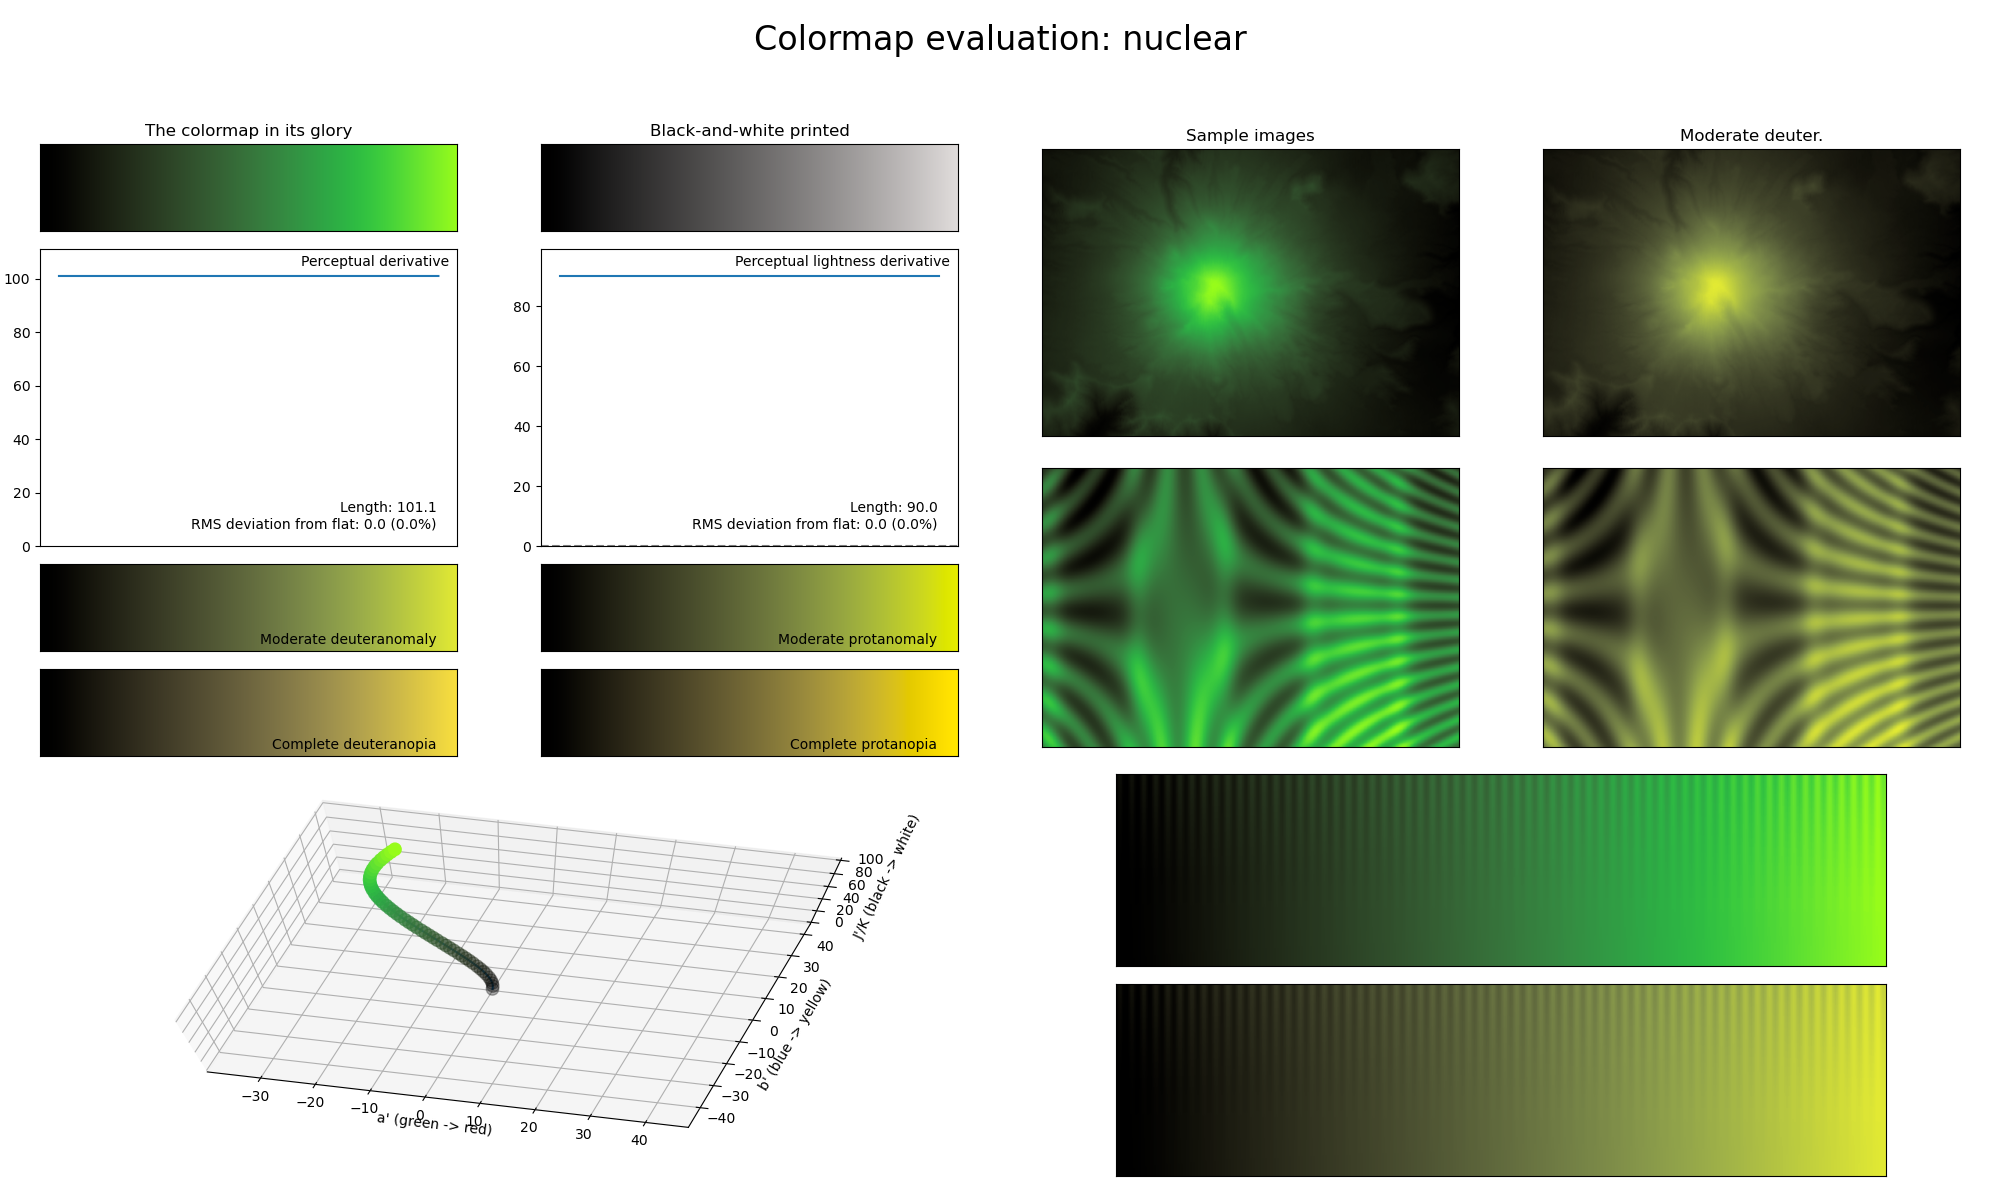 Statistics of the *nuclear* colormap.